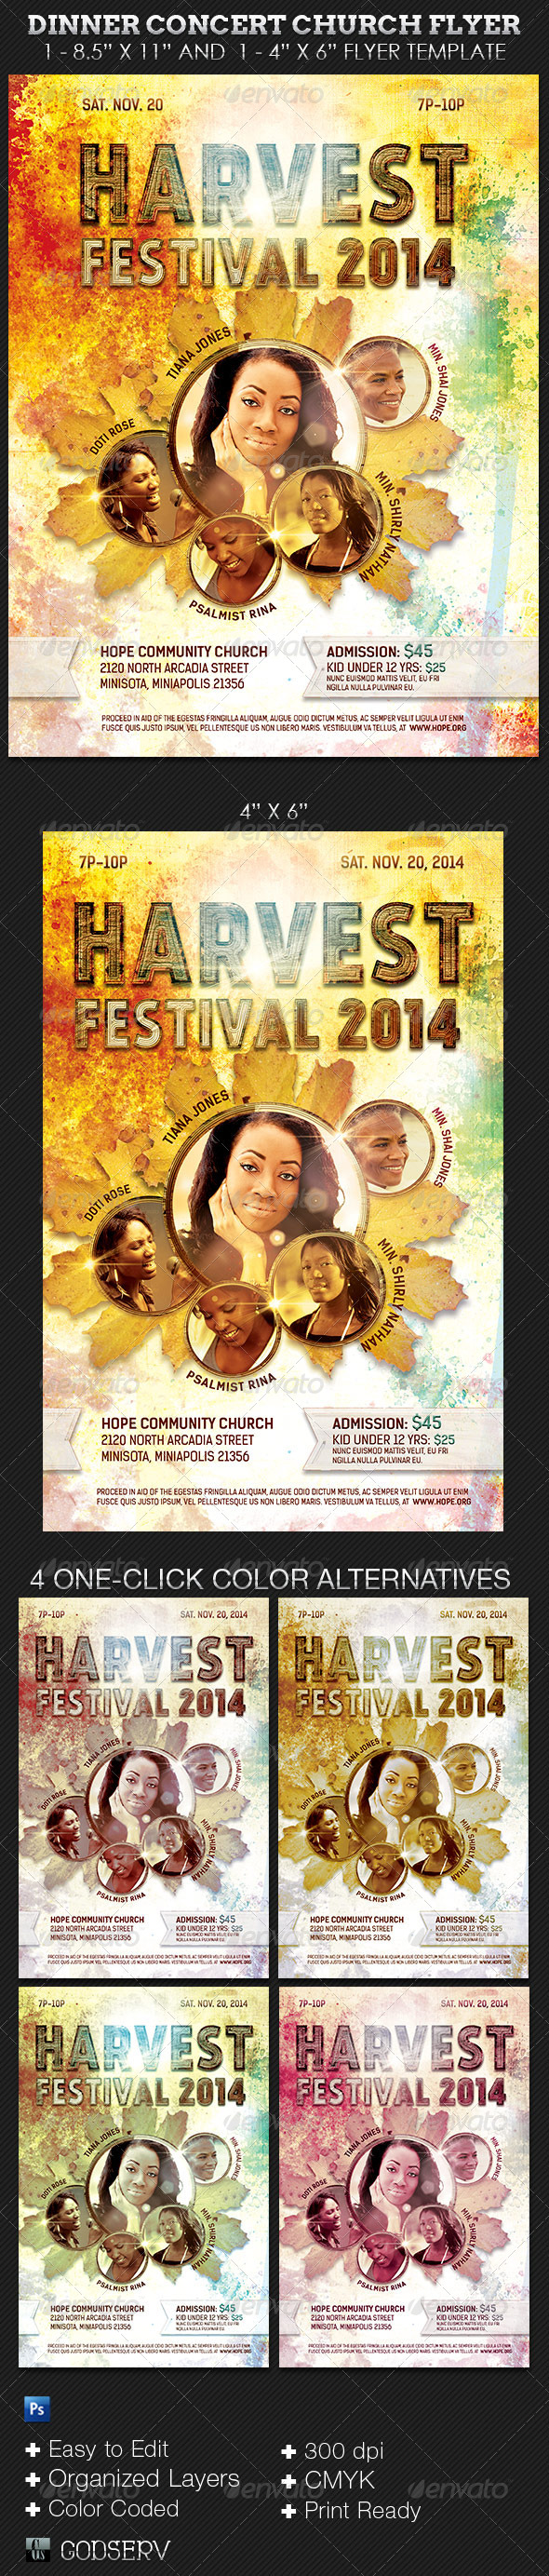 Harvest Festival Concert Flyer Template - Church Flyers